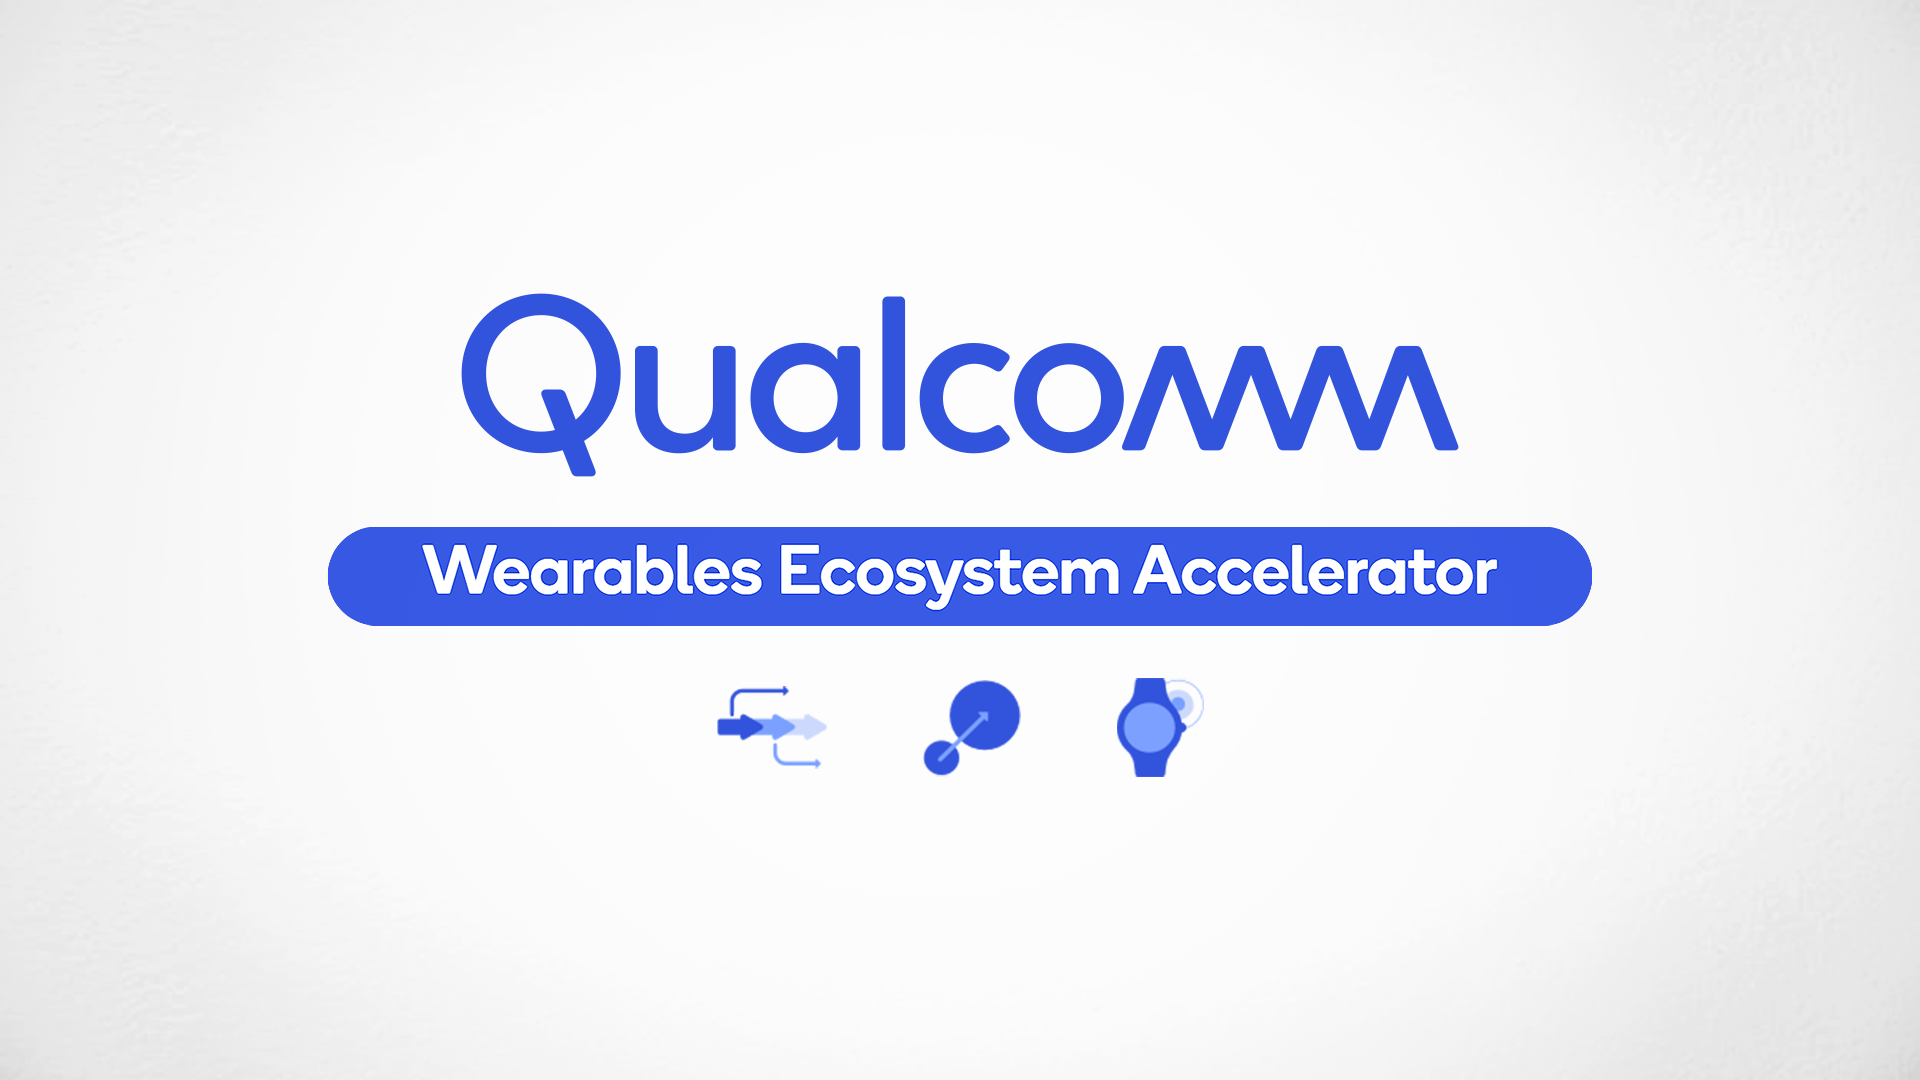 Qualcomm envisions a new era of wearables for pets, kids, and seniors